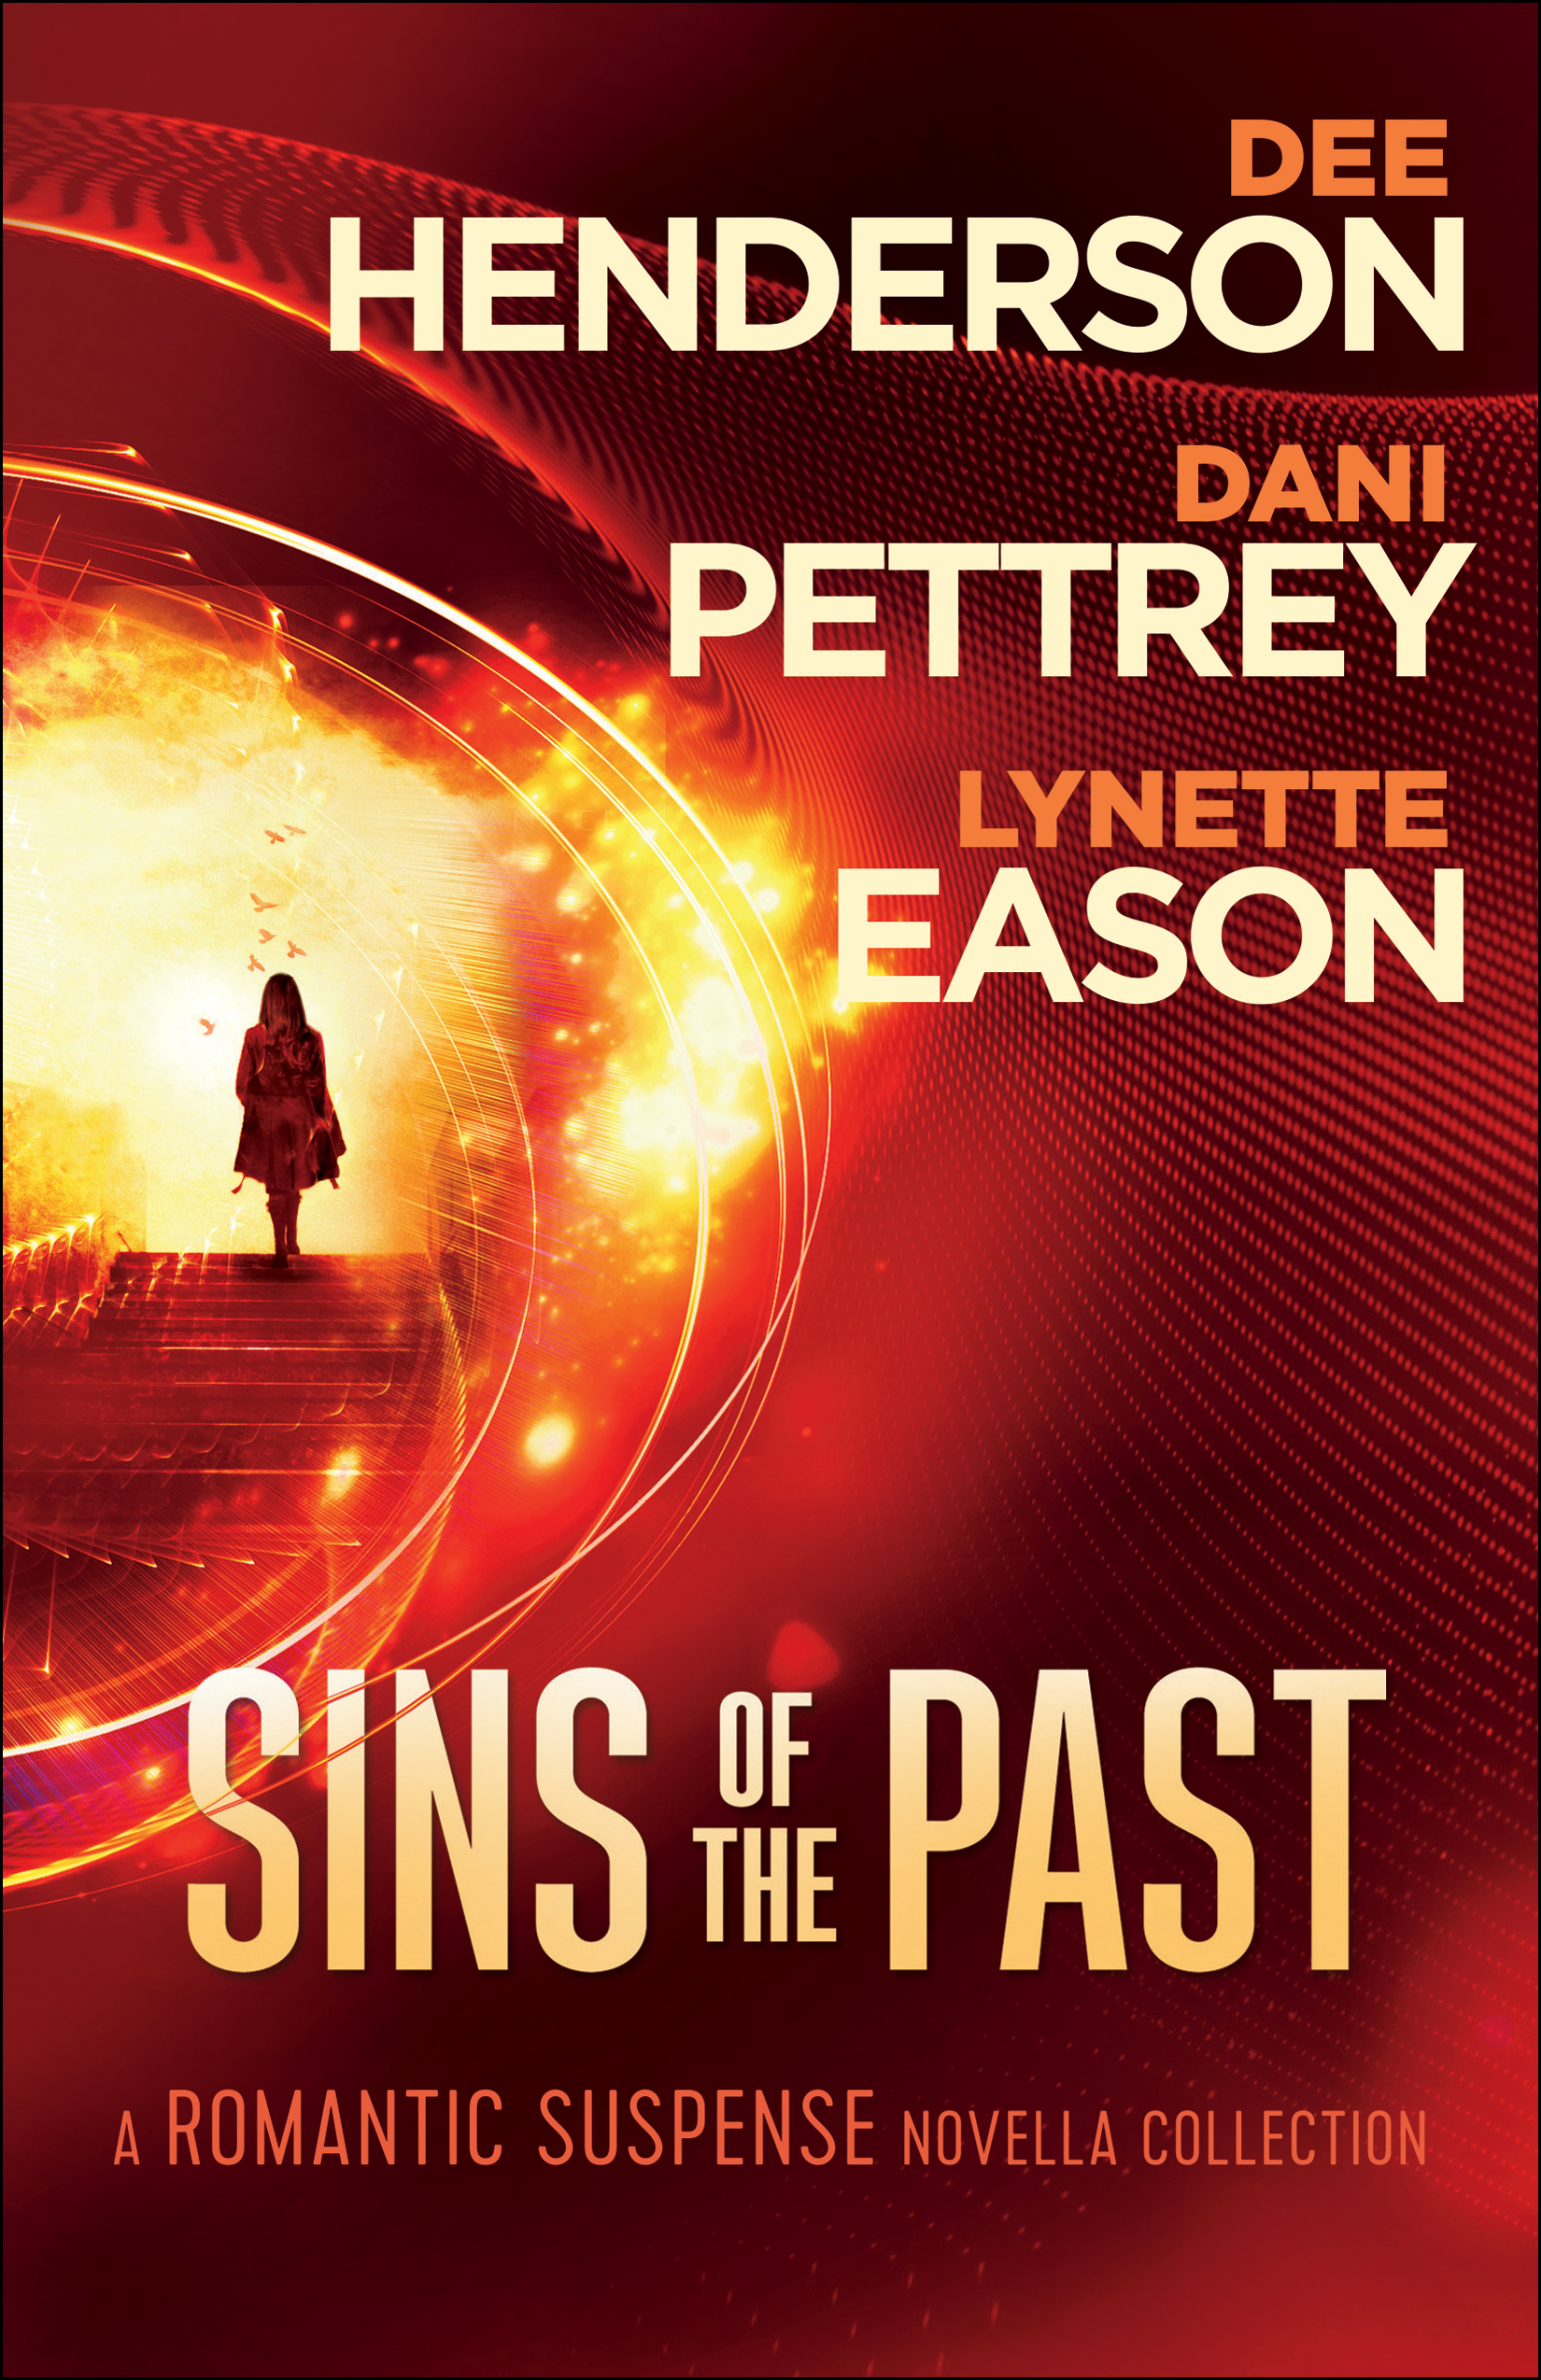 Sins of the Past by Dee Henderson, Dani Pettrey, and Lynette Eason